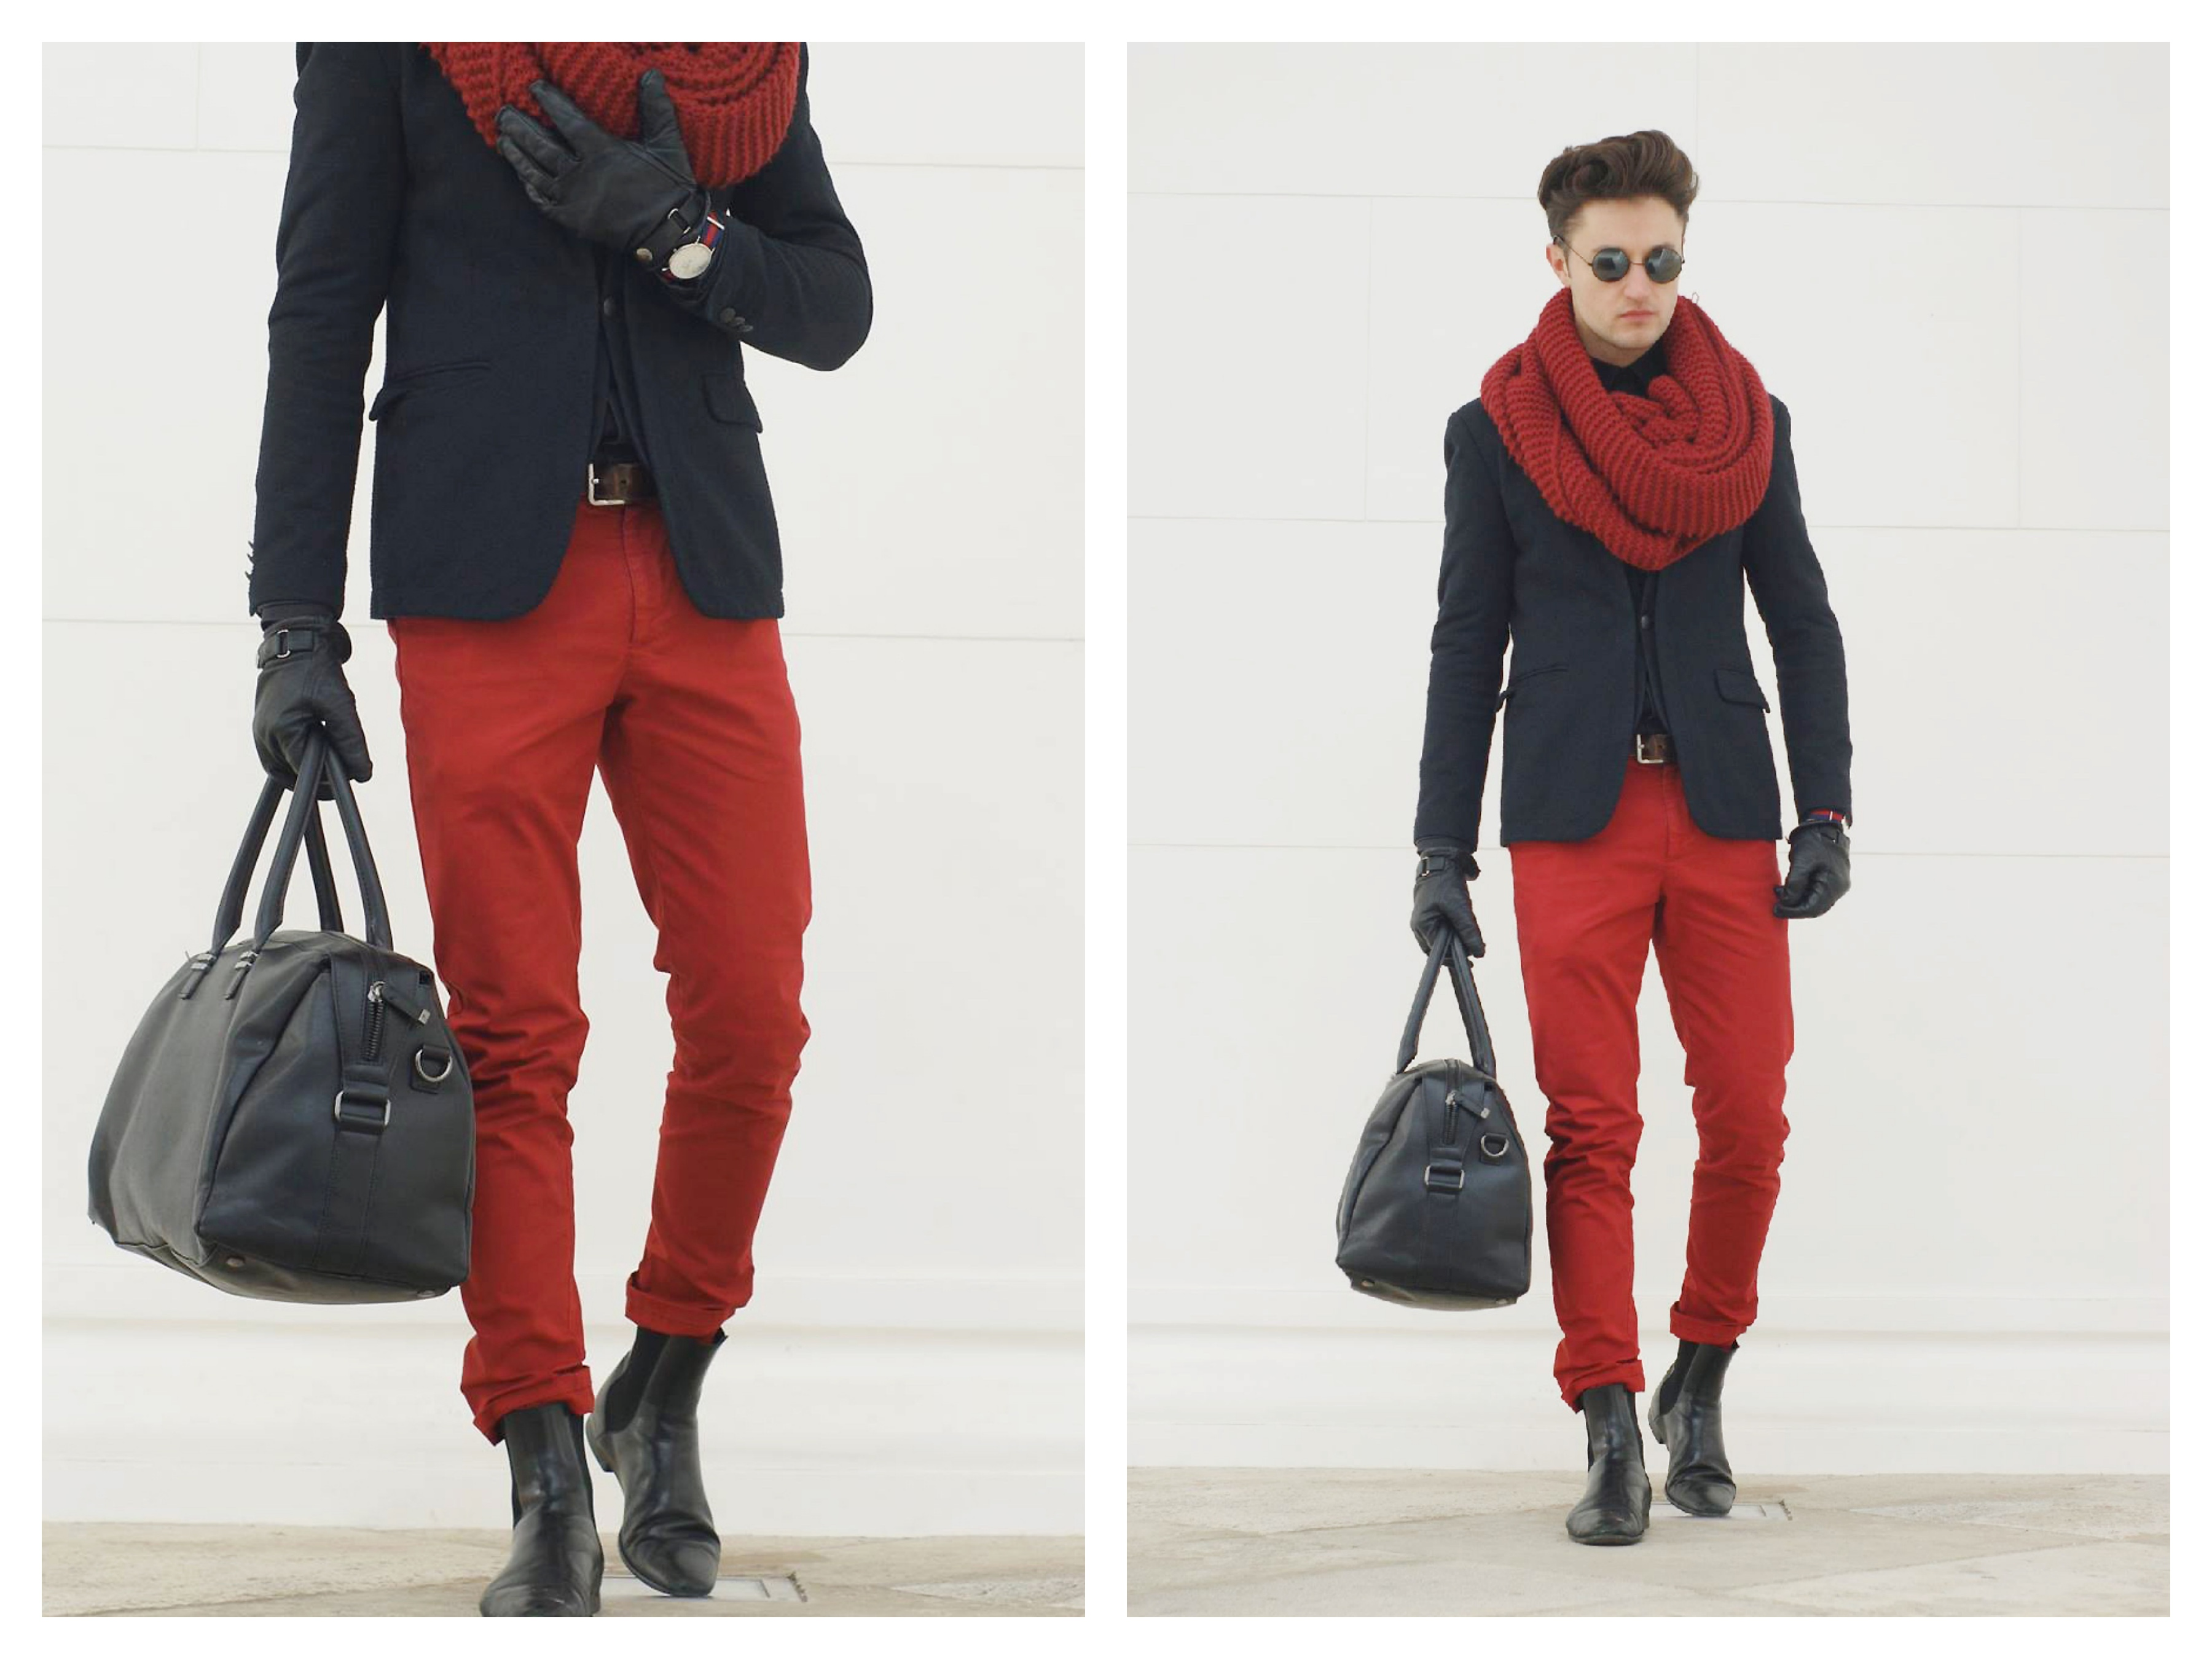 fashion blogger ivo saraf is showing his red and black outfit for the women's day celebration.